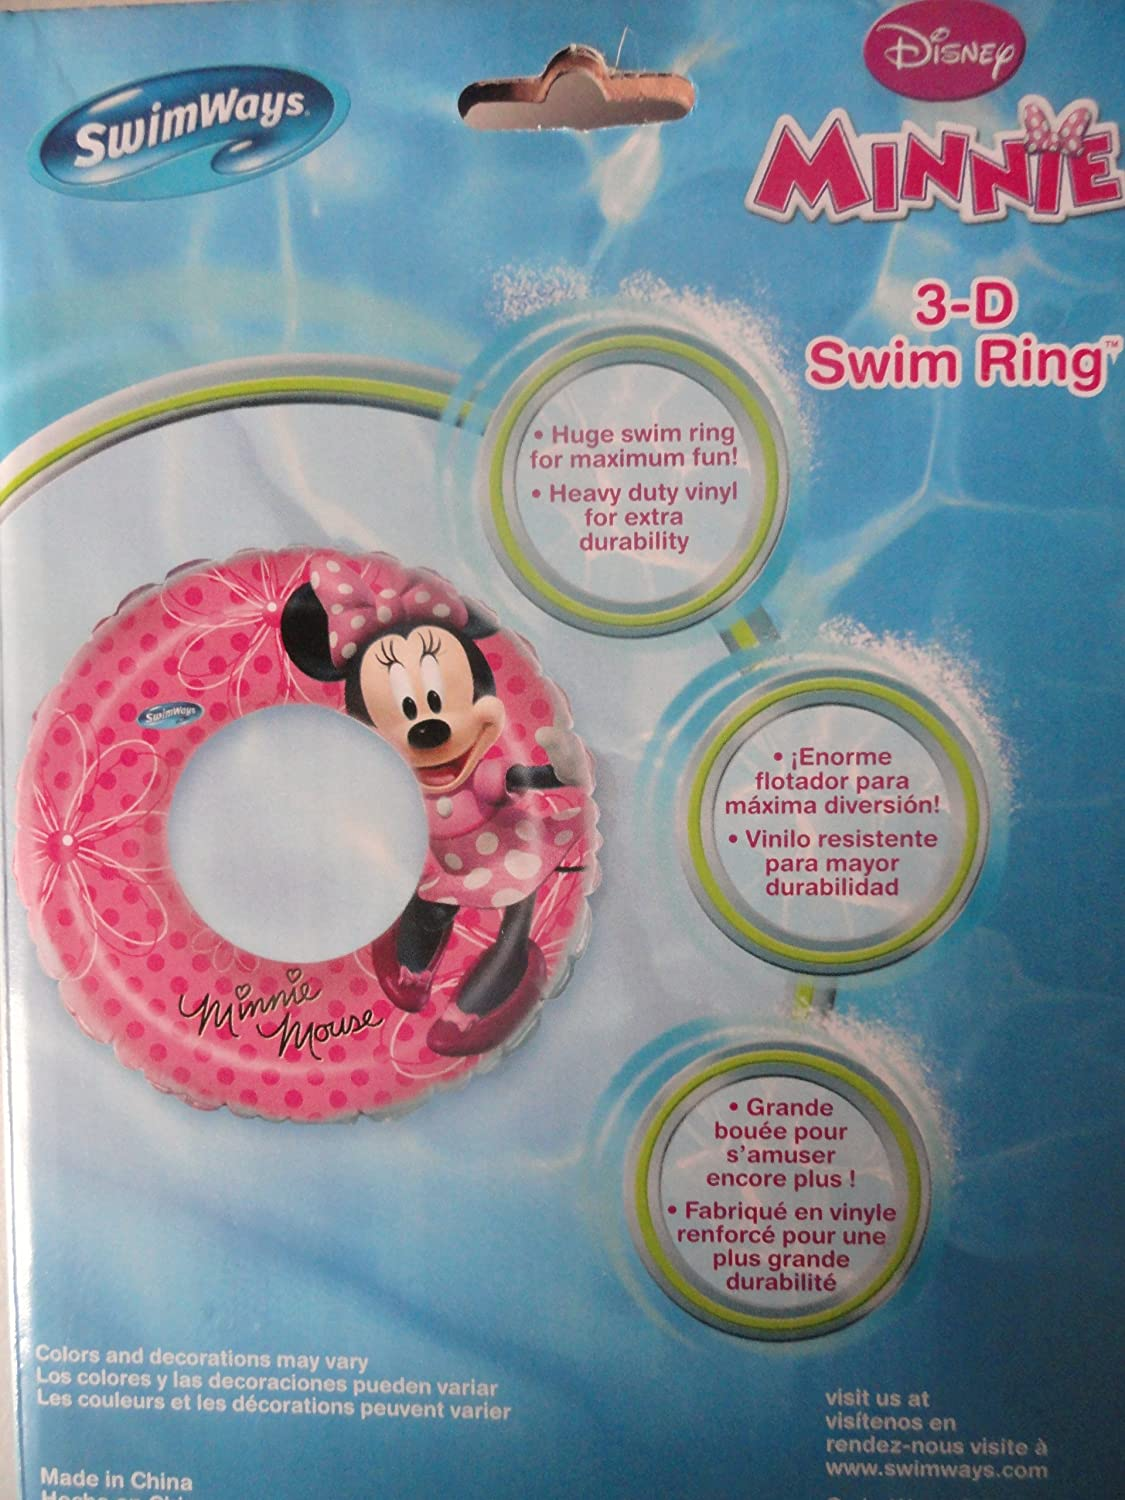 Amazon.com: Disney Minnies Bow-Tique - 3-D Swim Ring by Swim Ways: Toys & Games